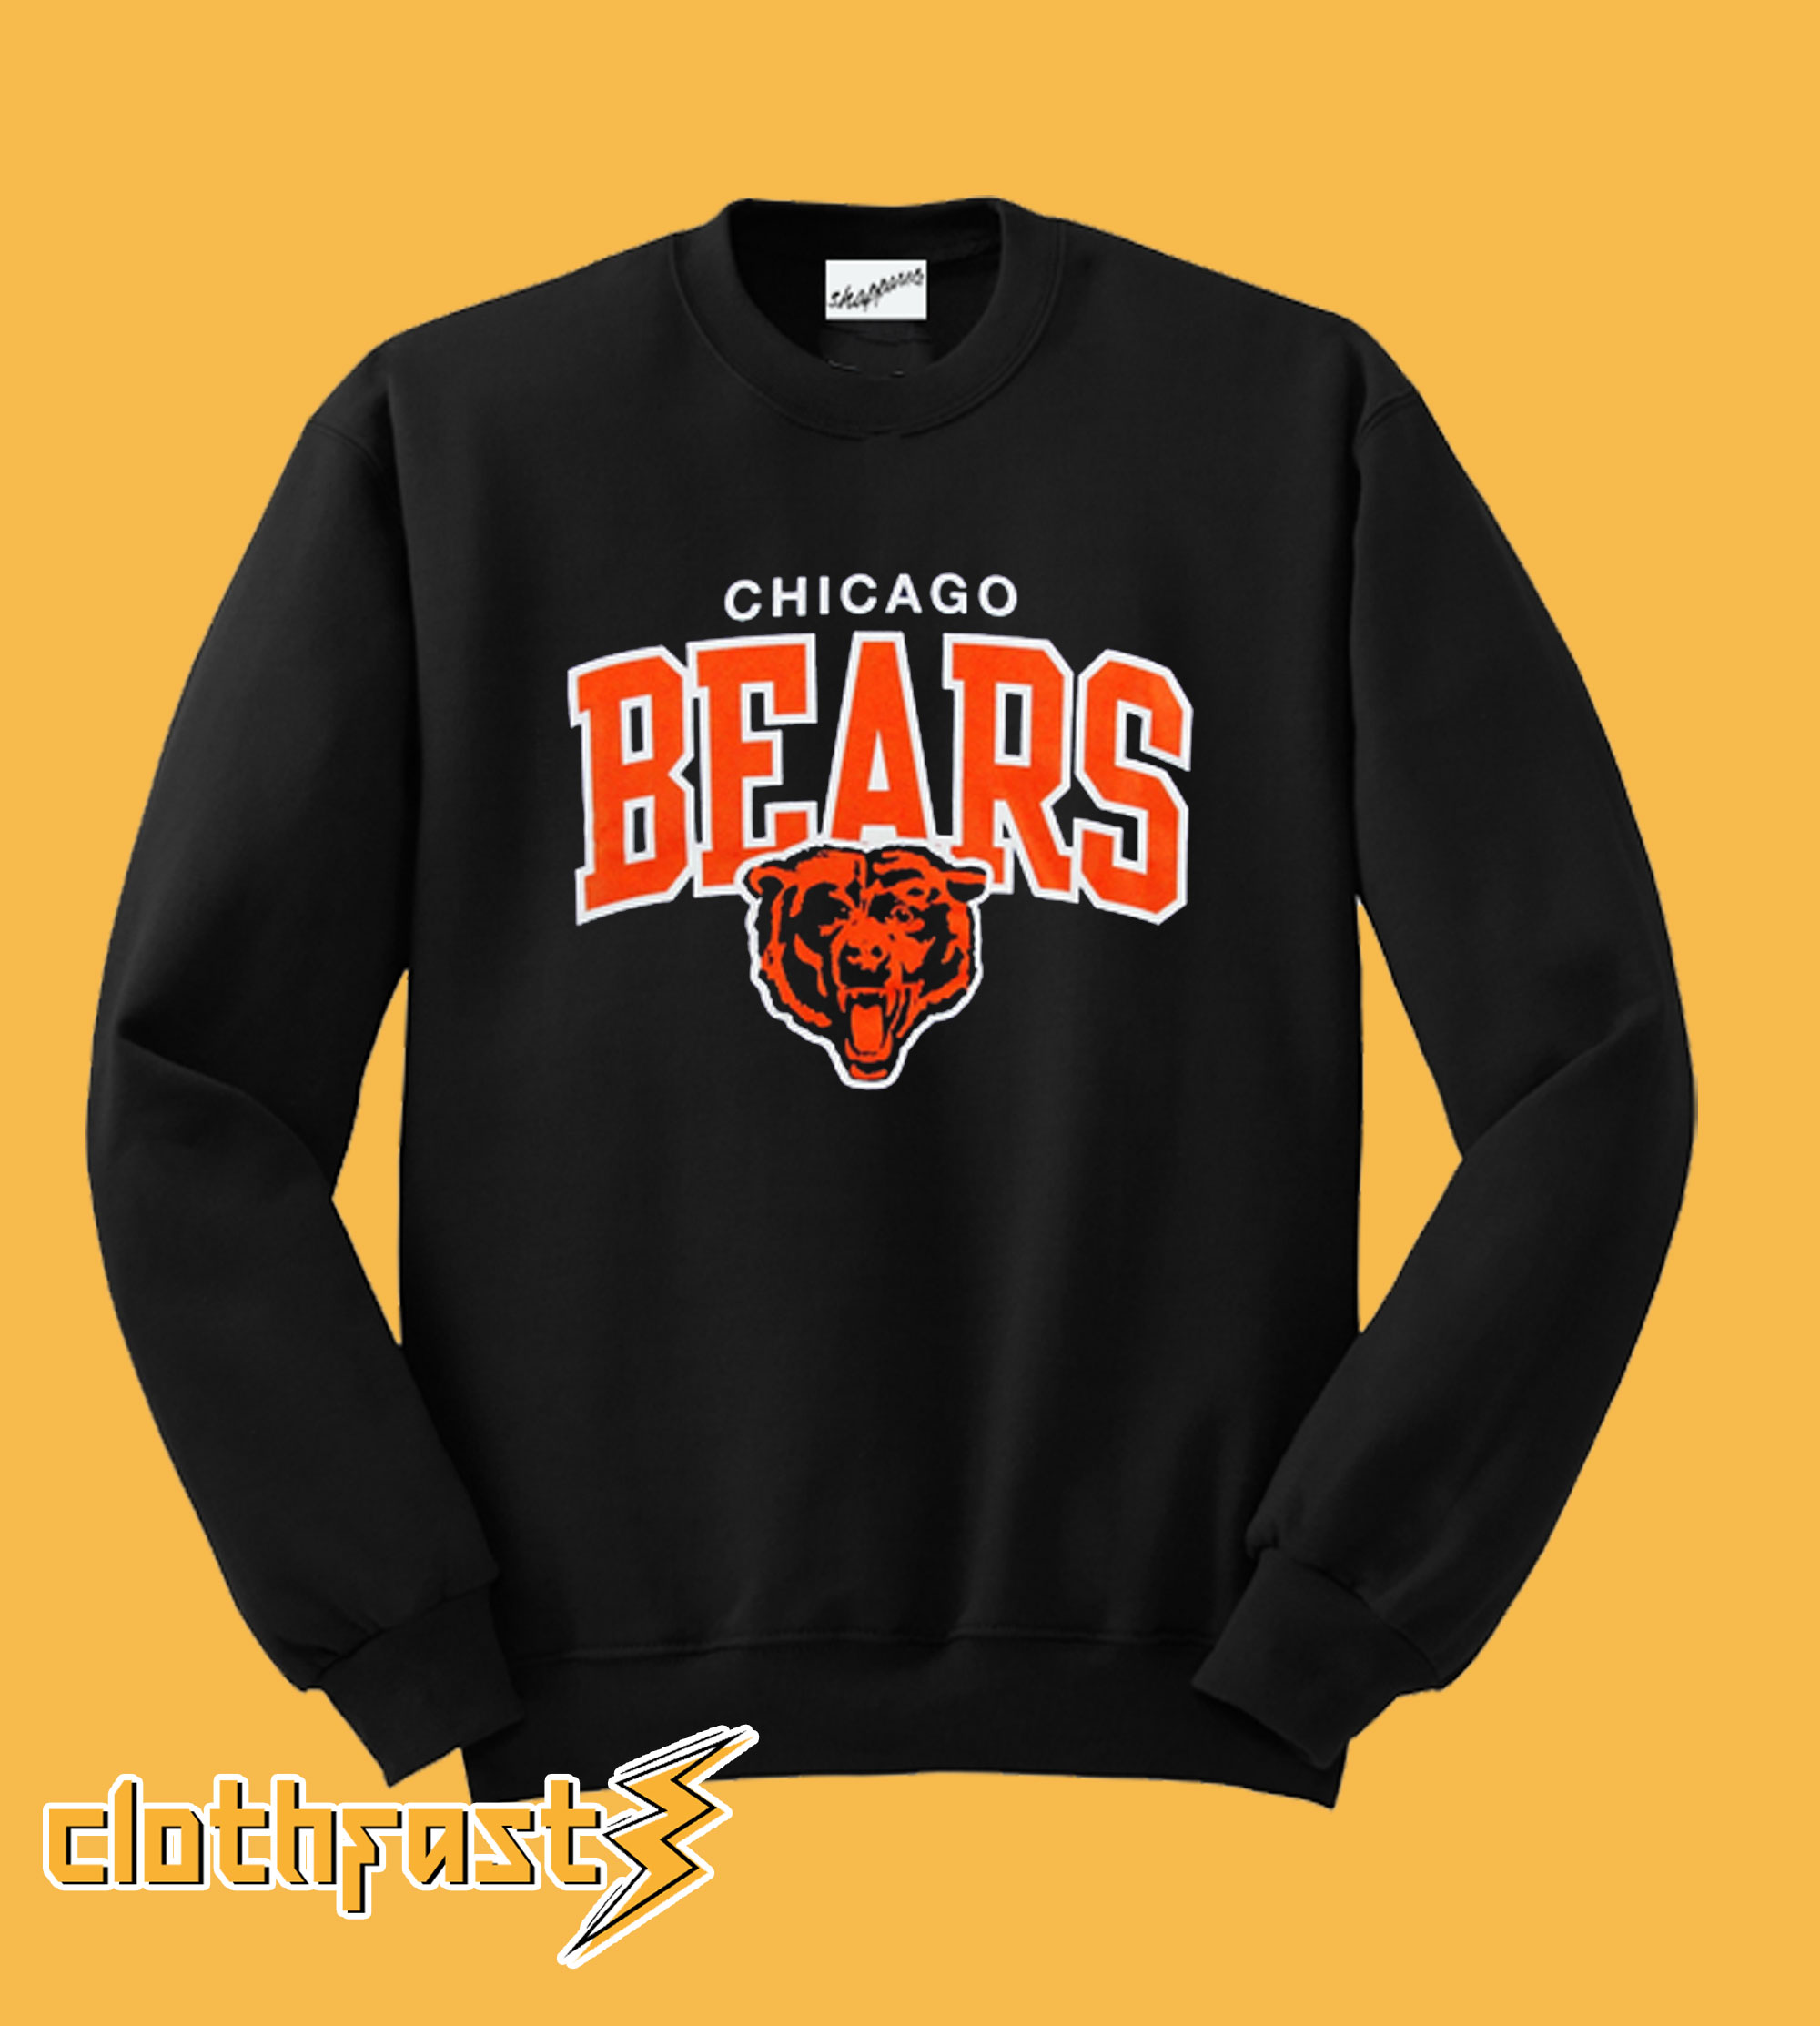 Chicago Bears Sweatshirt